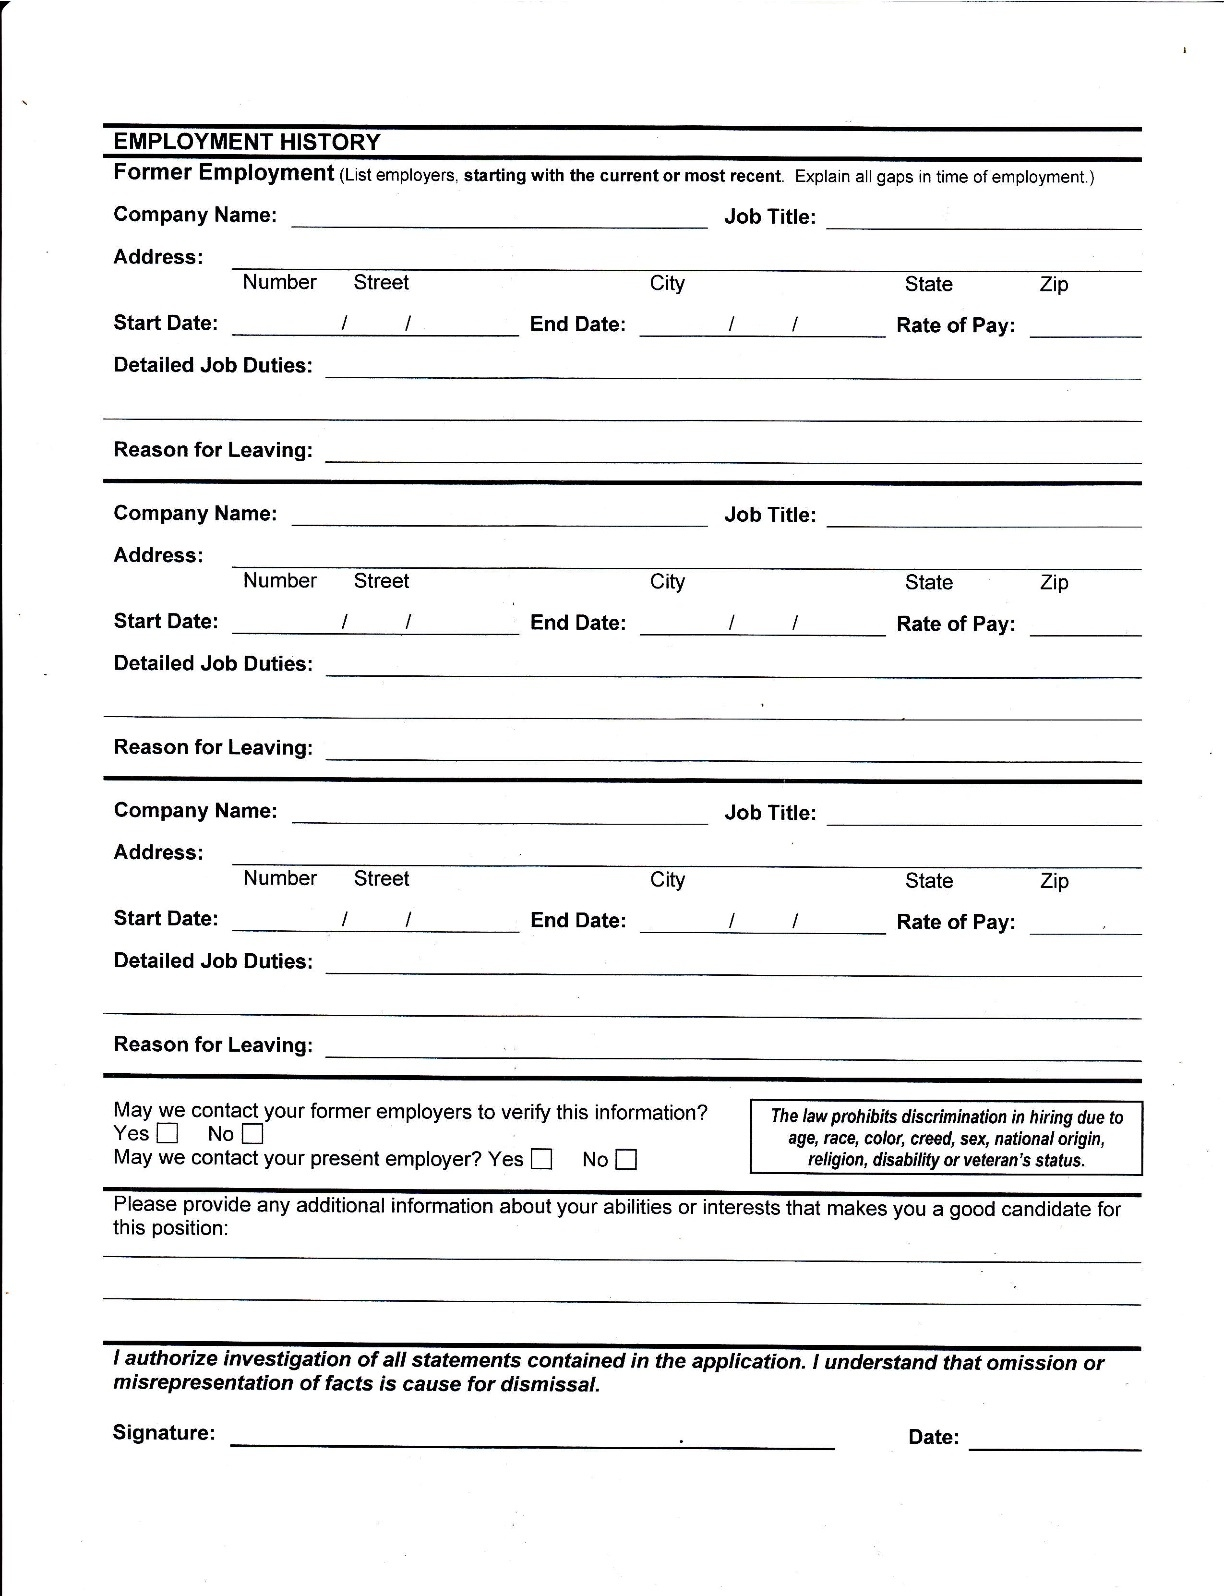 Blank Generic Employment Application Form | Cv Format Of Marriage